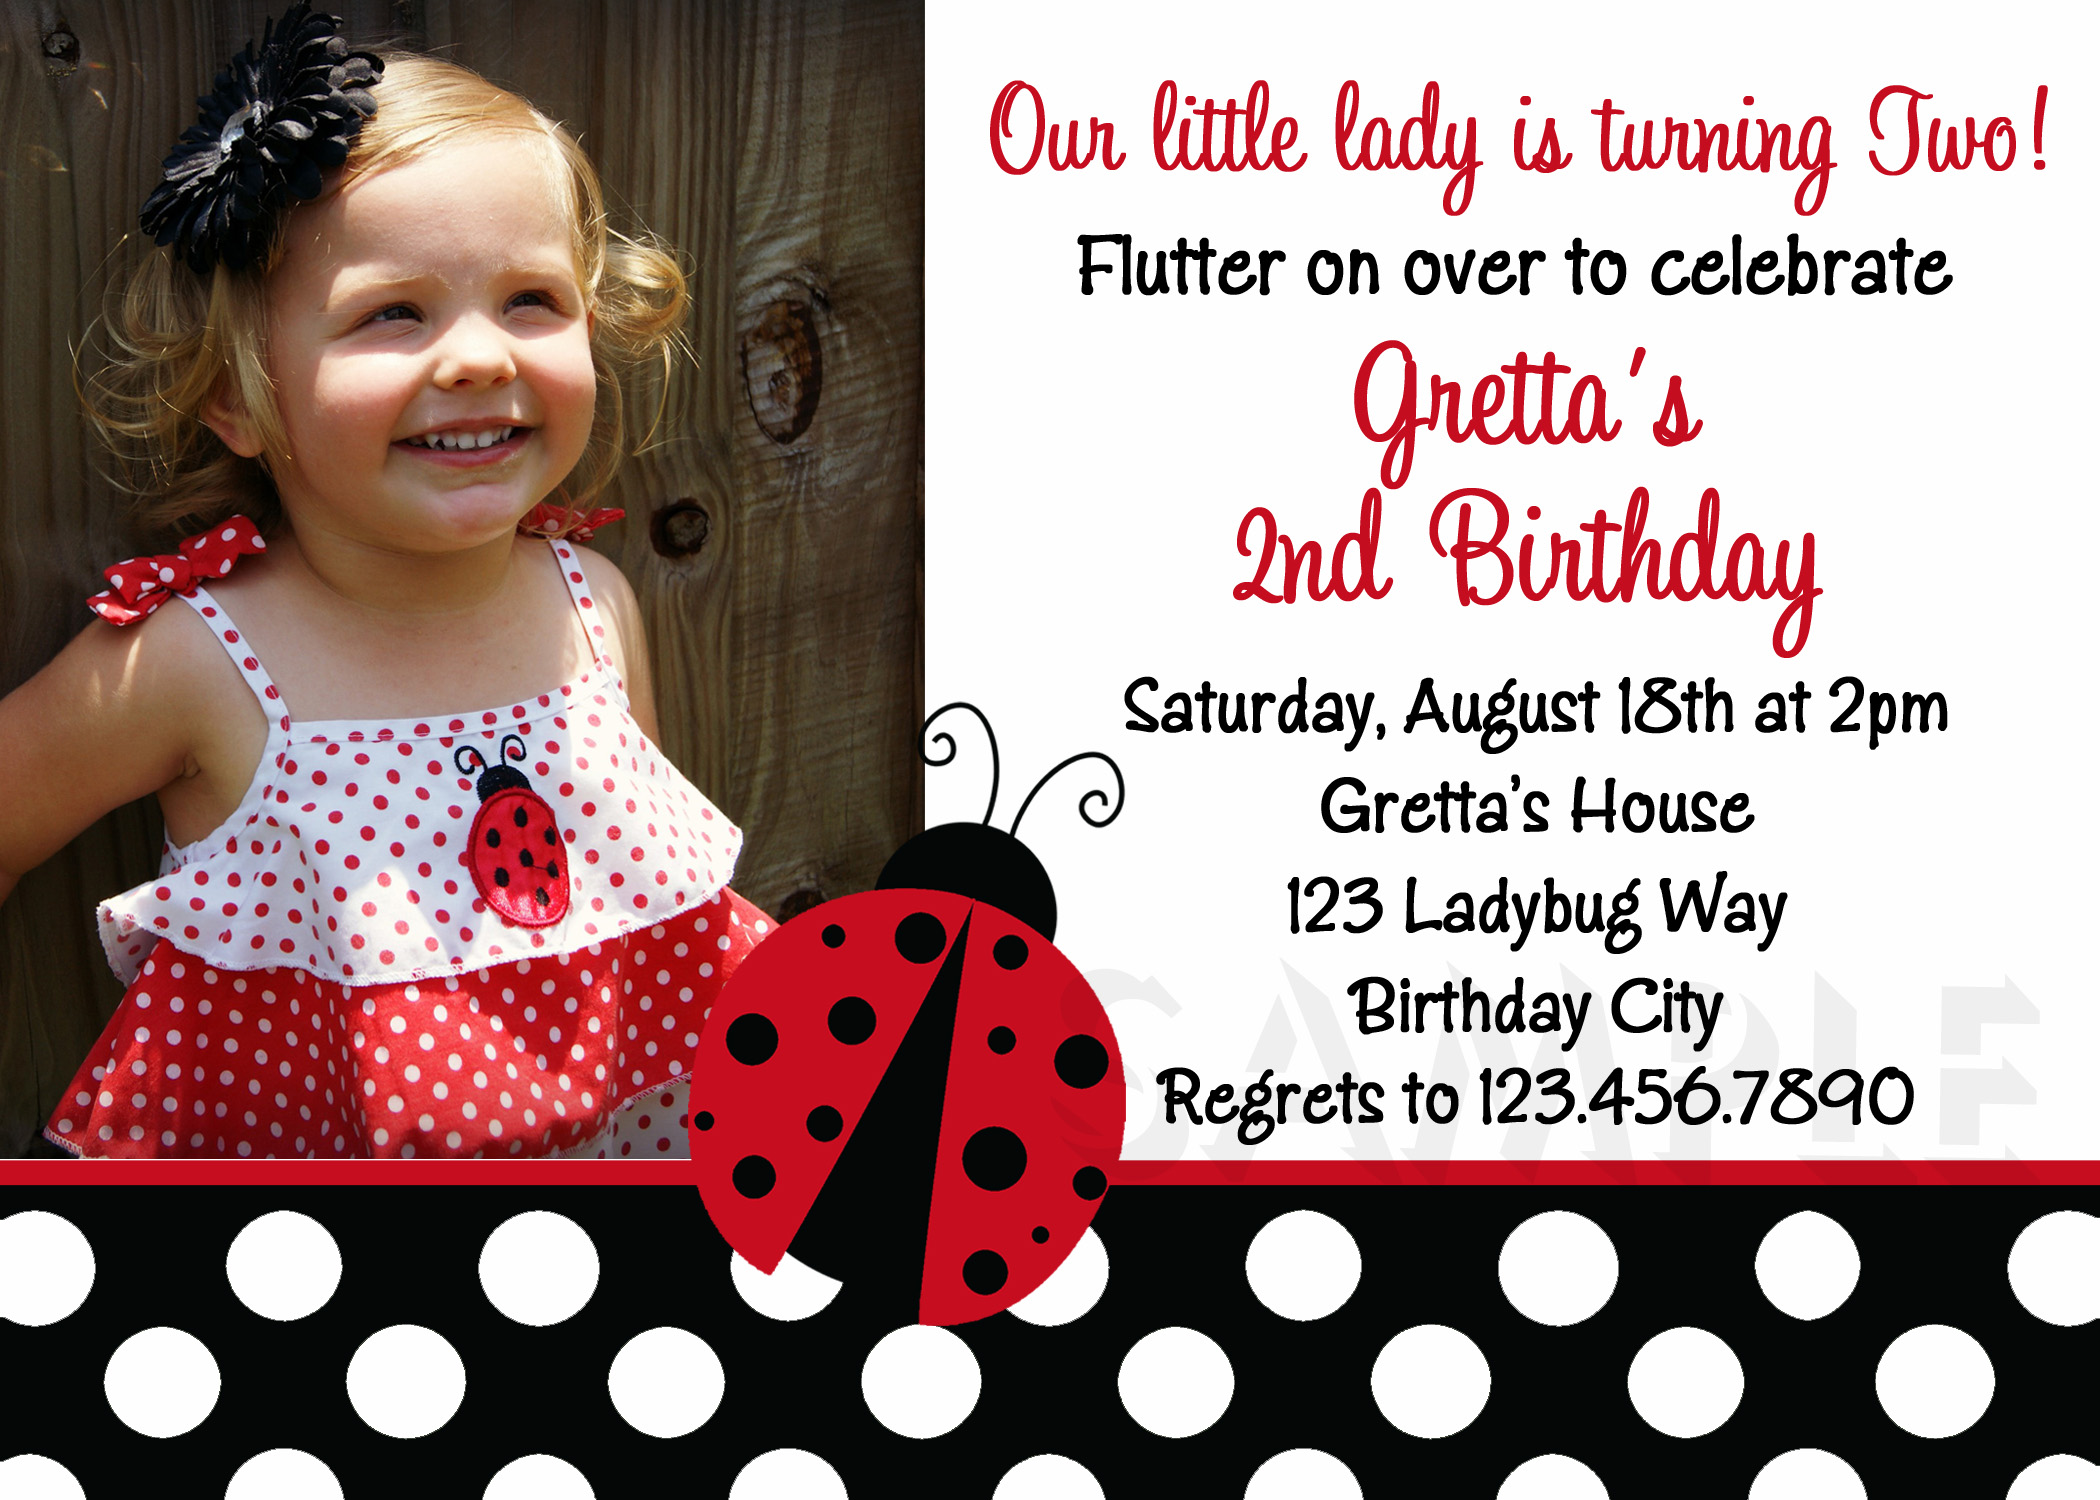 Printable birthday invitations ladybug first party red ladybugs girls printable birthday invites filmwisefo Choice Image